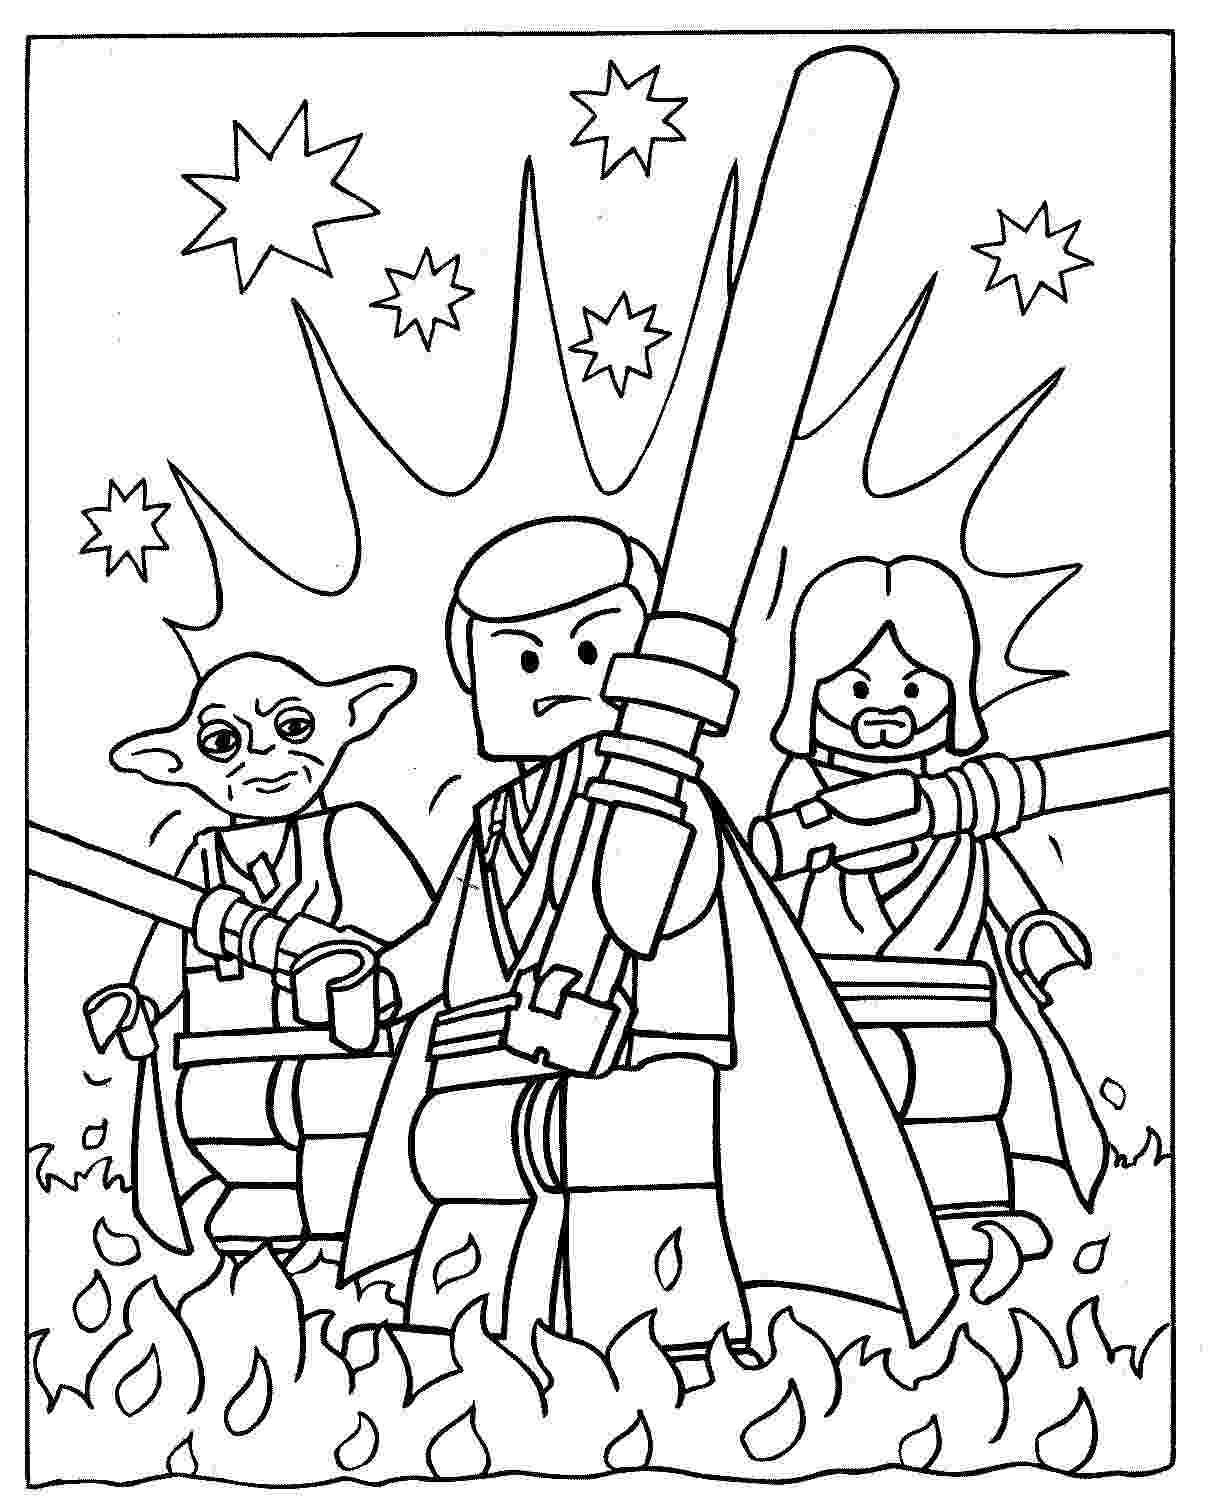 colouring pages lego star wars star wars coloring pages getcoloringpagescom star colouring wars pages lego